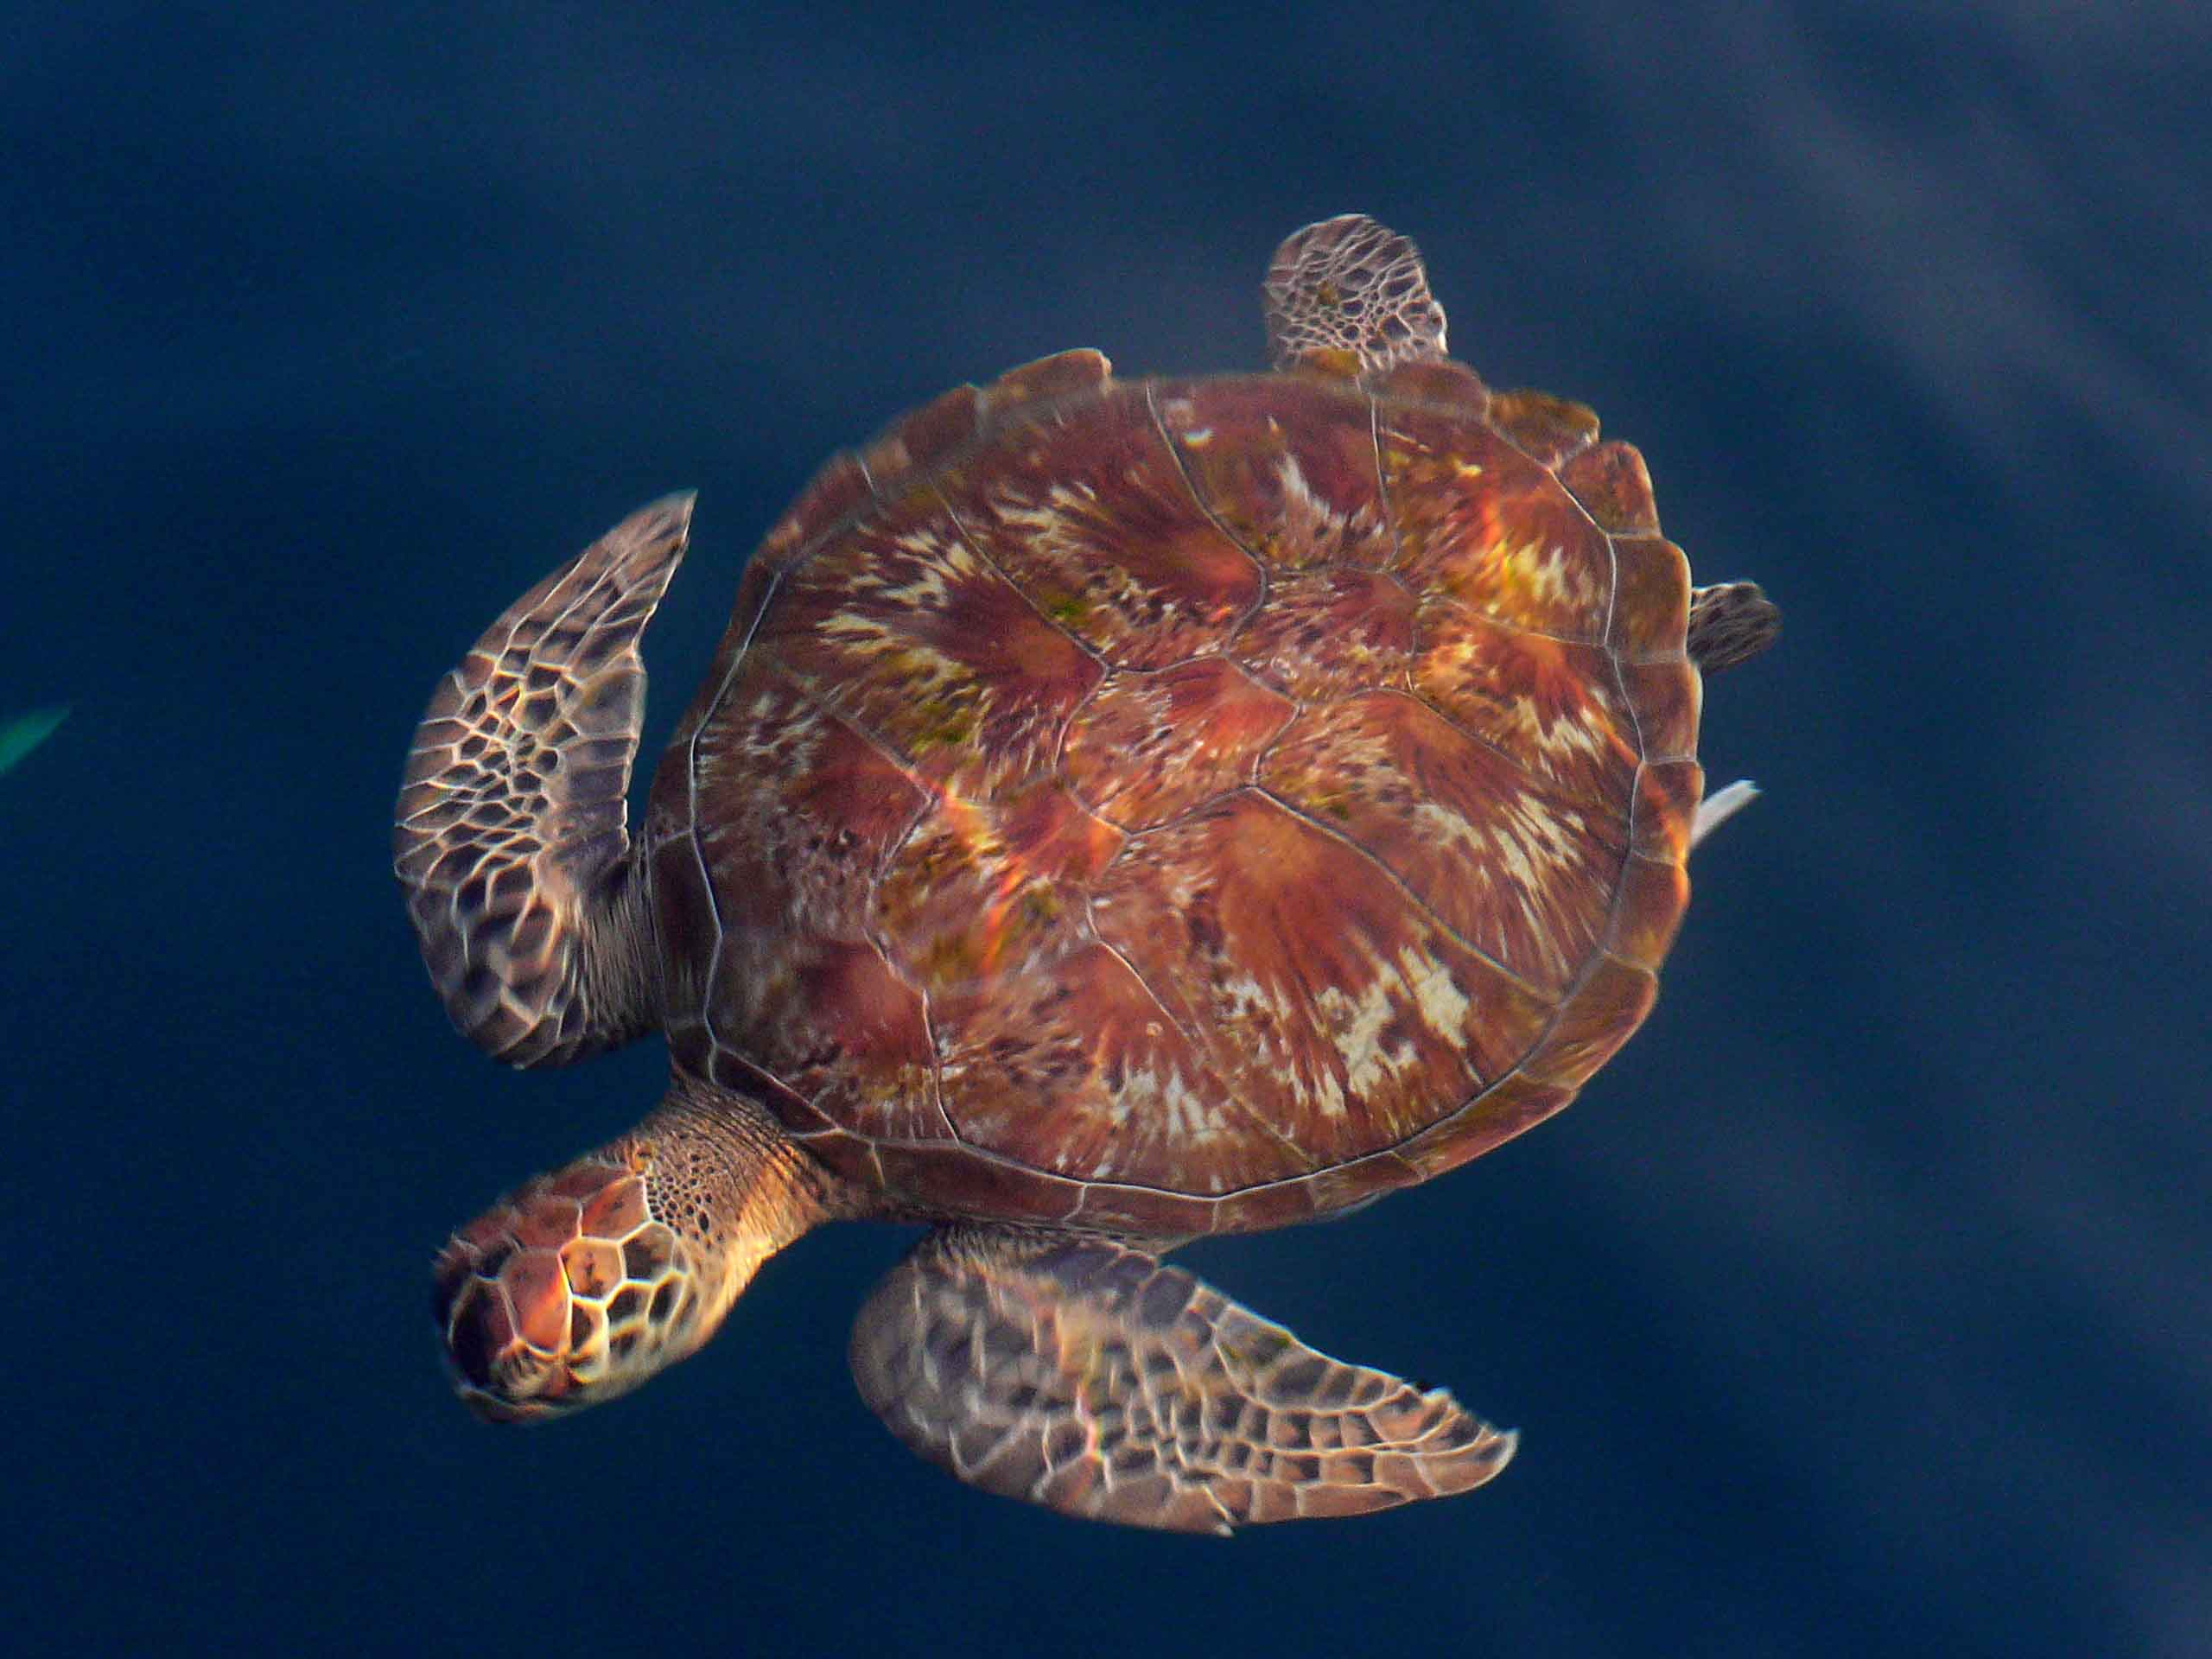 Loggerhead Turtle photo by Tessa Mazor